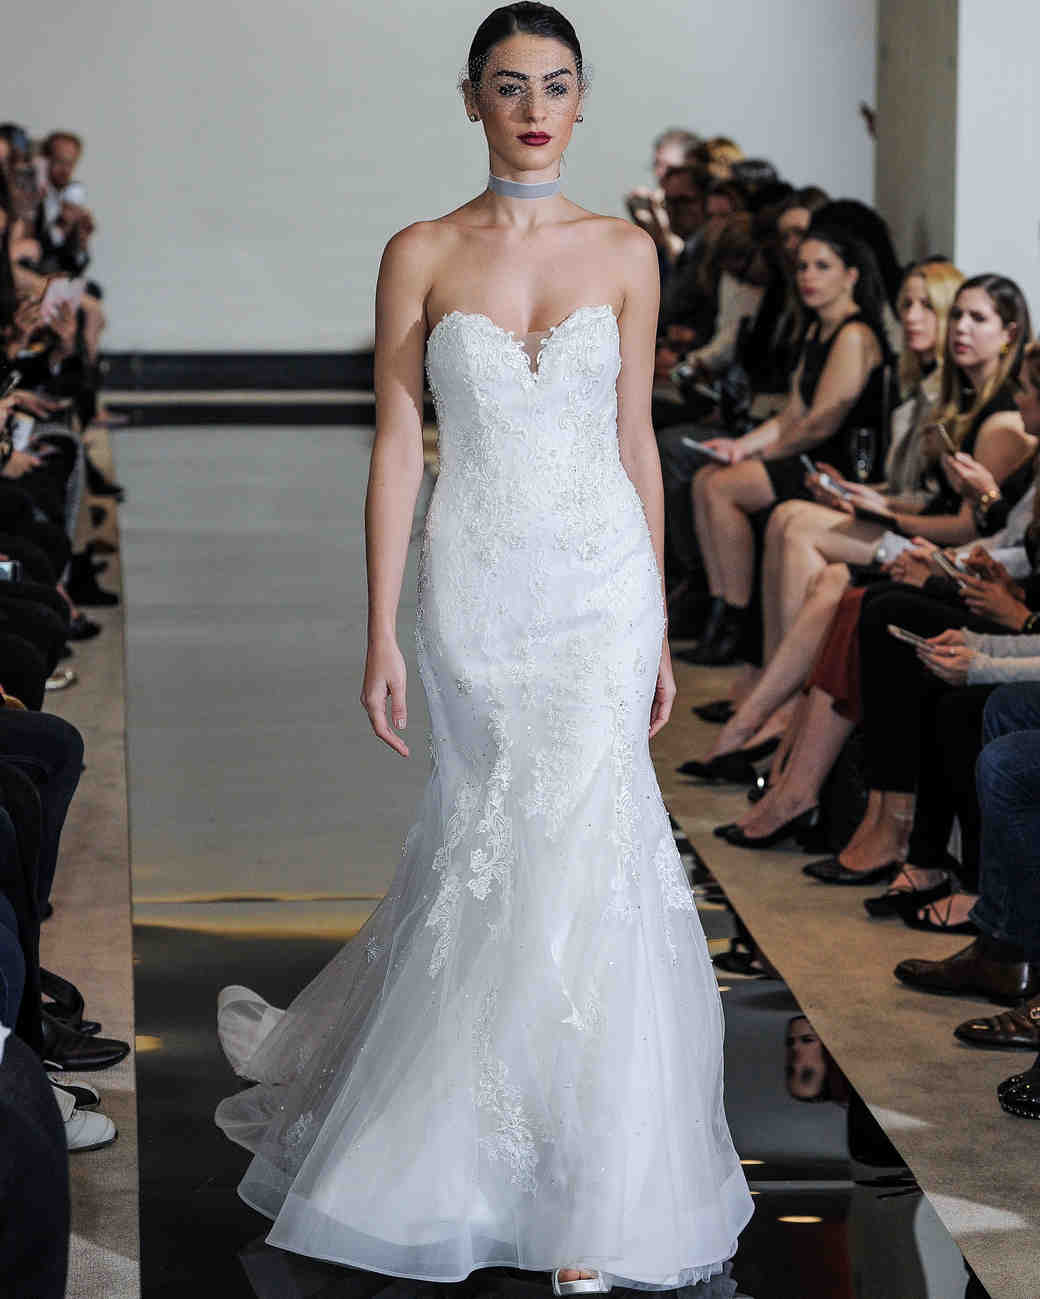 Justin Alexander Strapless Wedding Dress with Lace Spring 2018